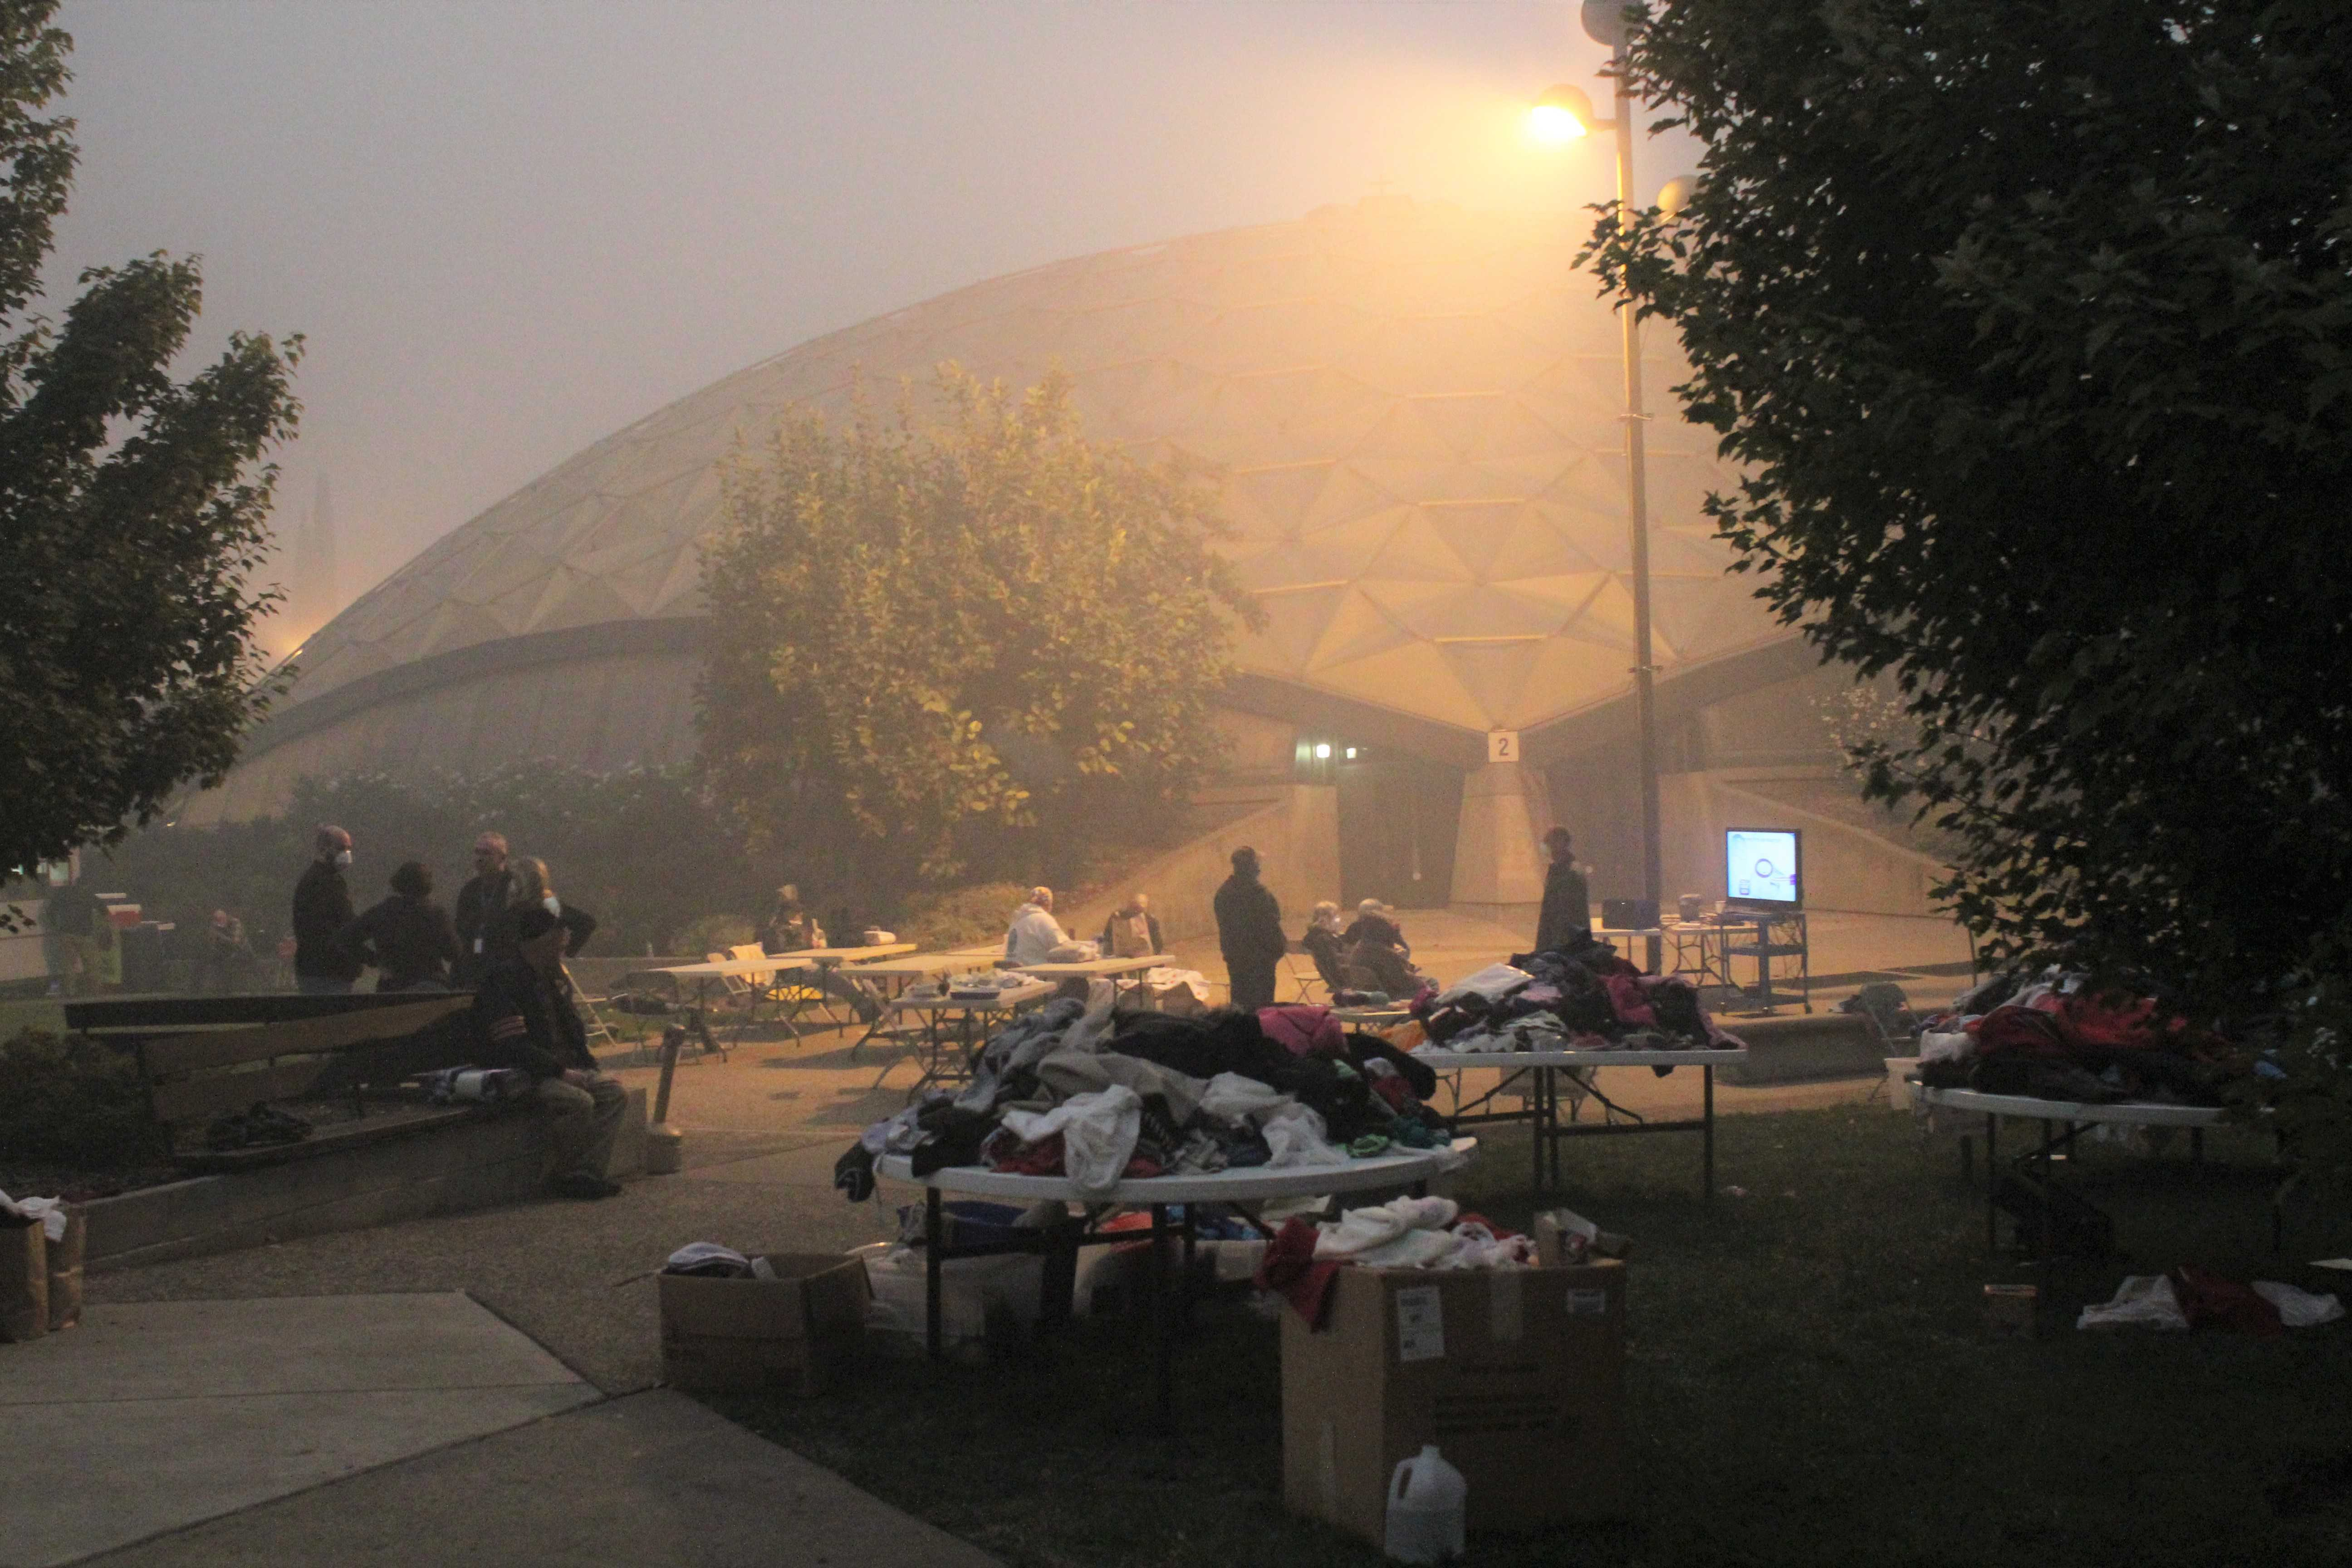 Death toll rises as wildfire spreads in Butte County